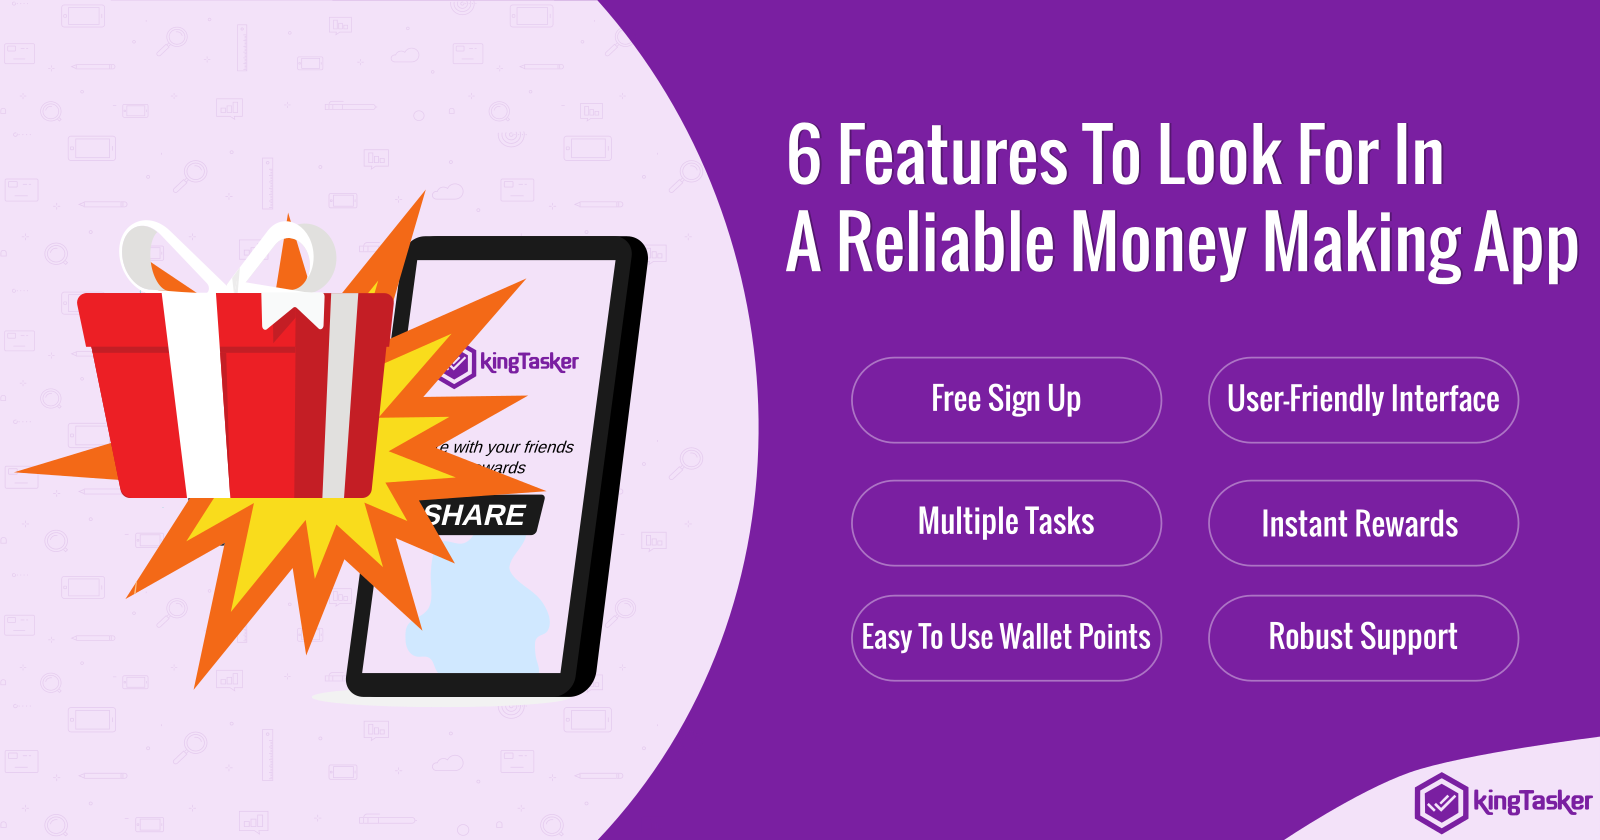 6 Features To Look For In A Reliable Money Making App